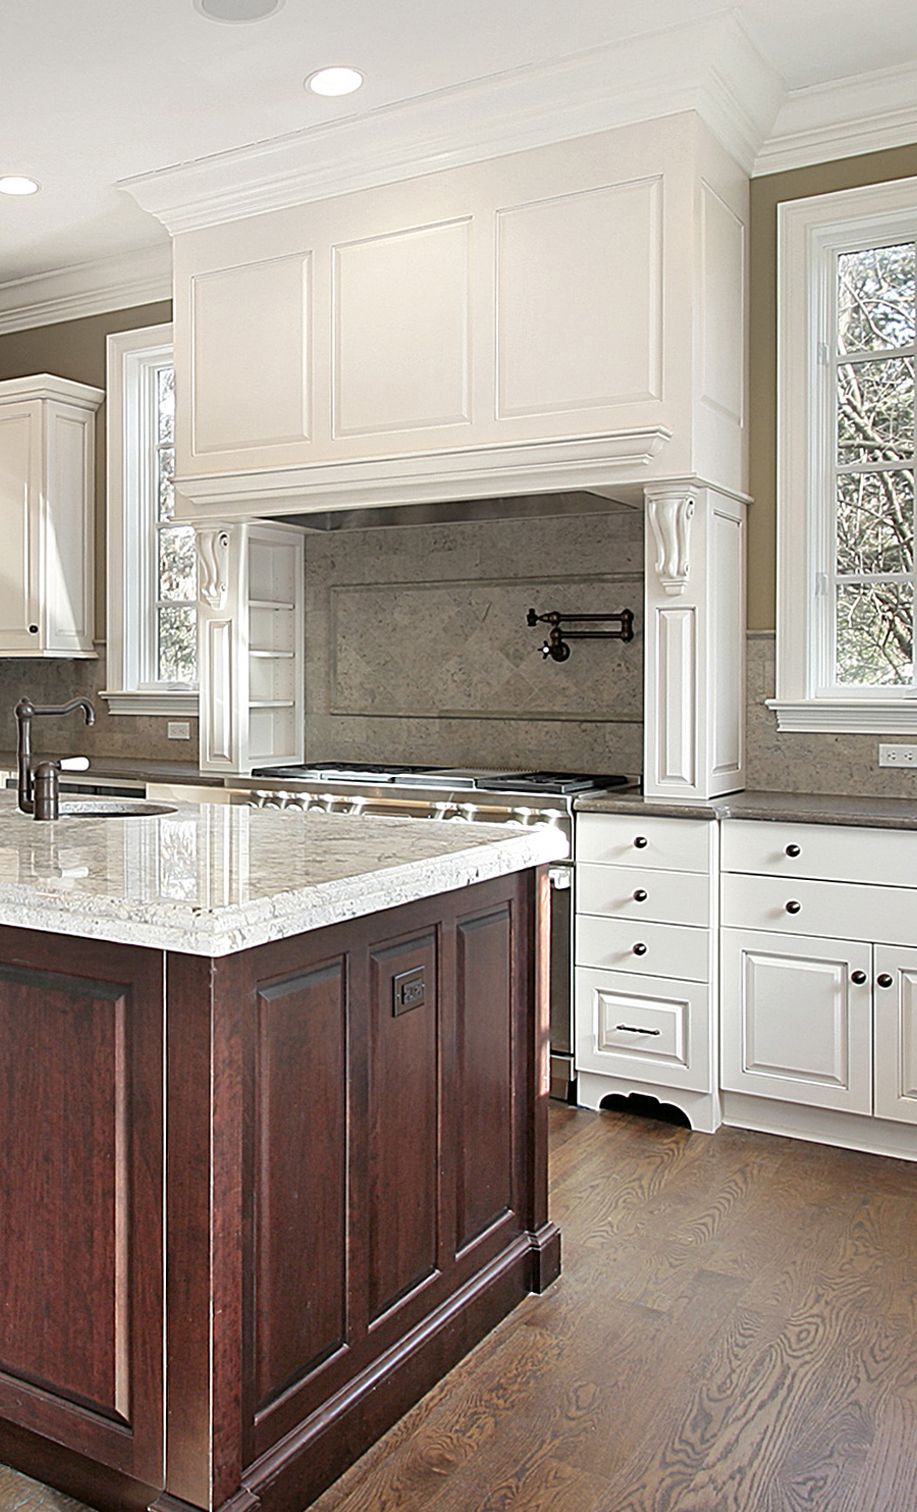 Cream Kitchen With Large Decorative Range Hood And Cherry Island Design Ideas Classic White Kitchen Kitchen Design Classic Cabinets